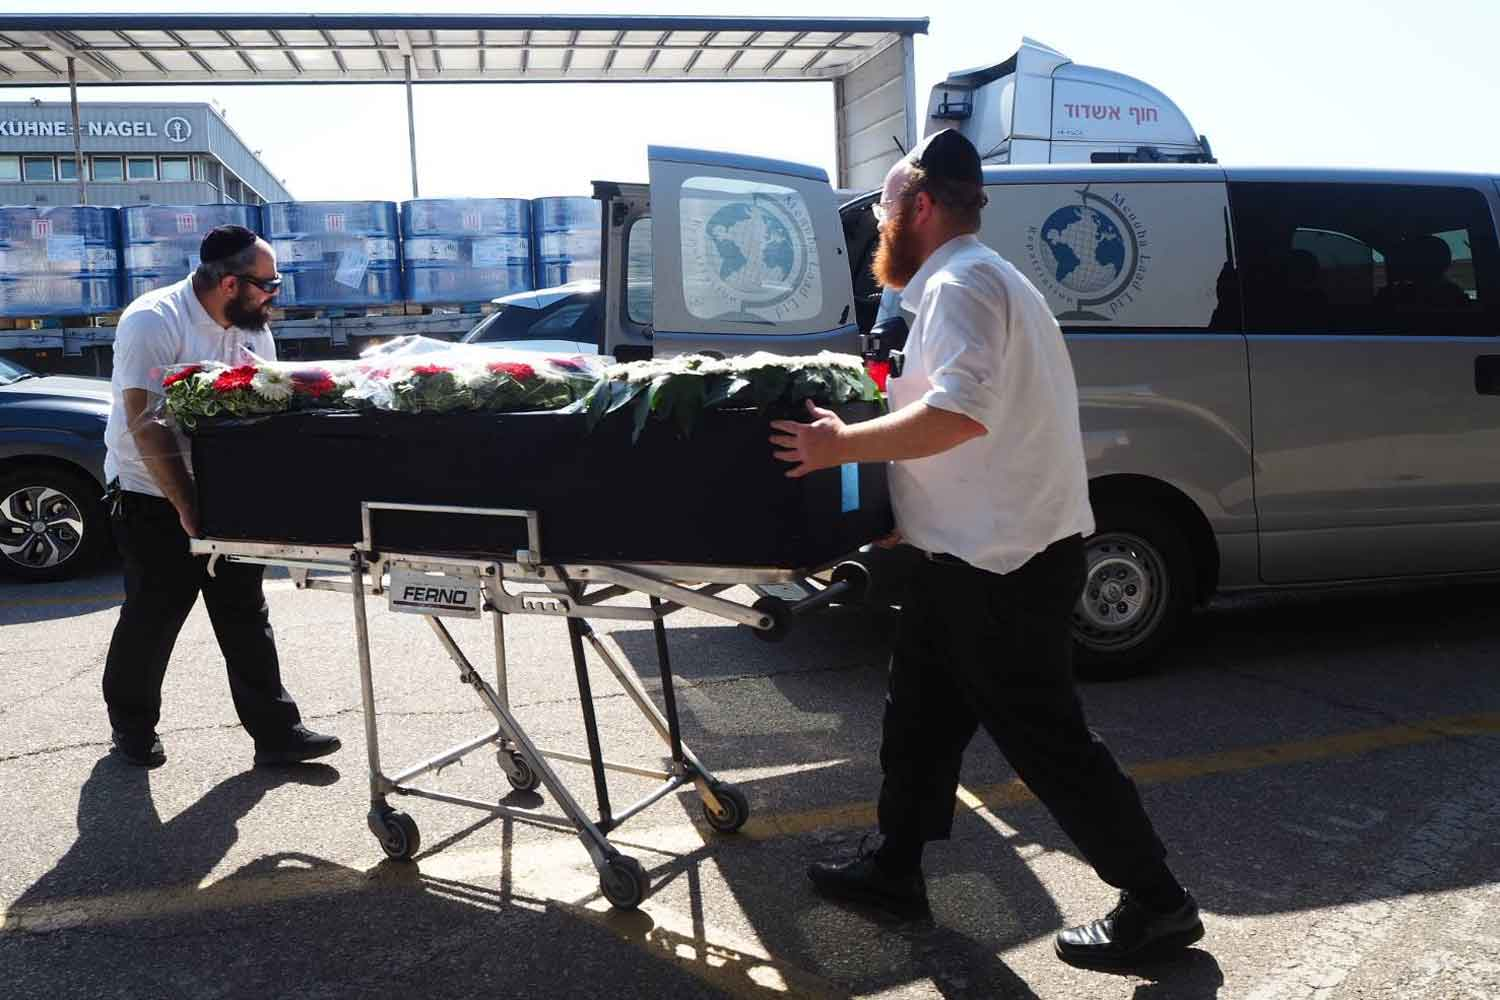 A coffin containing the body of one of the two Thai workers killed in a rocket attack in Israel is moved from a vehicle at Ben Gurion International Airport before being flown to Thailand on Tuesday.  The flight was scheduled to arrive at Suvarnabhumi airport after noon on Wednesday. (Foreign Ministry photo)